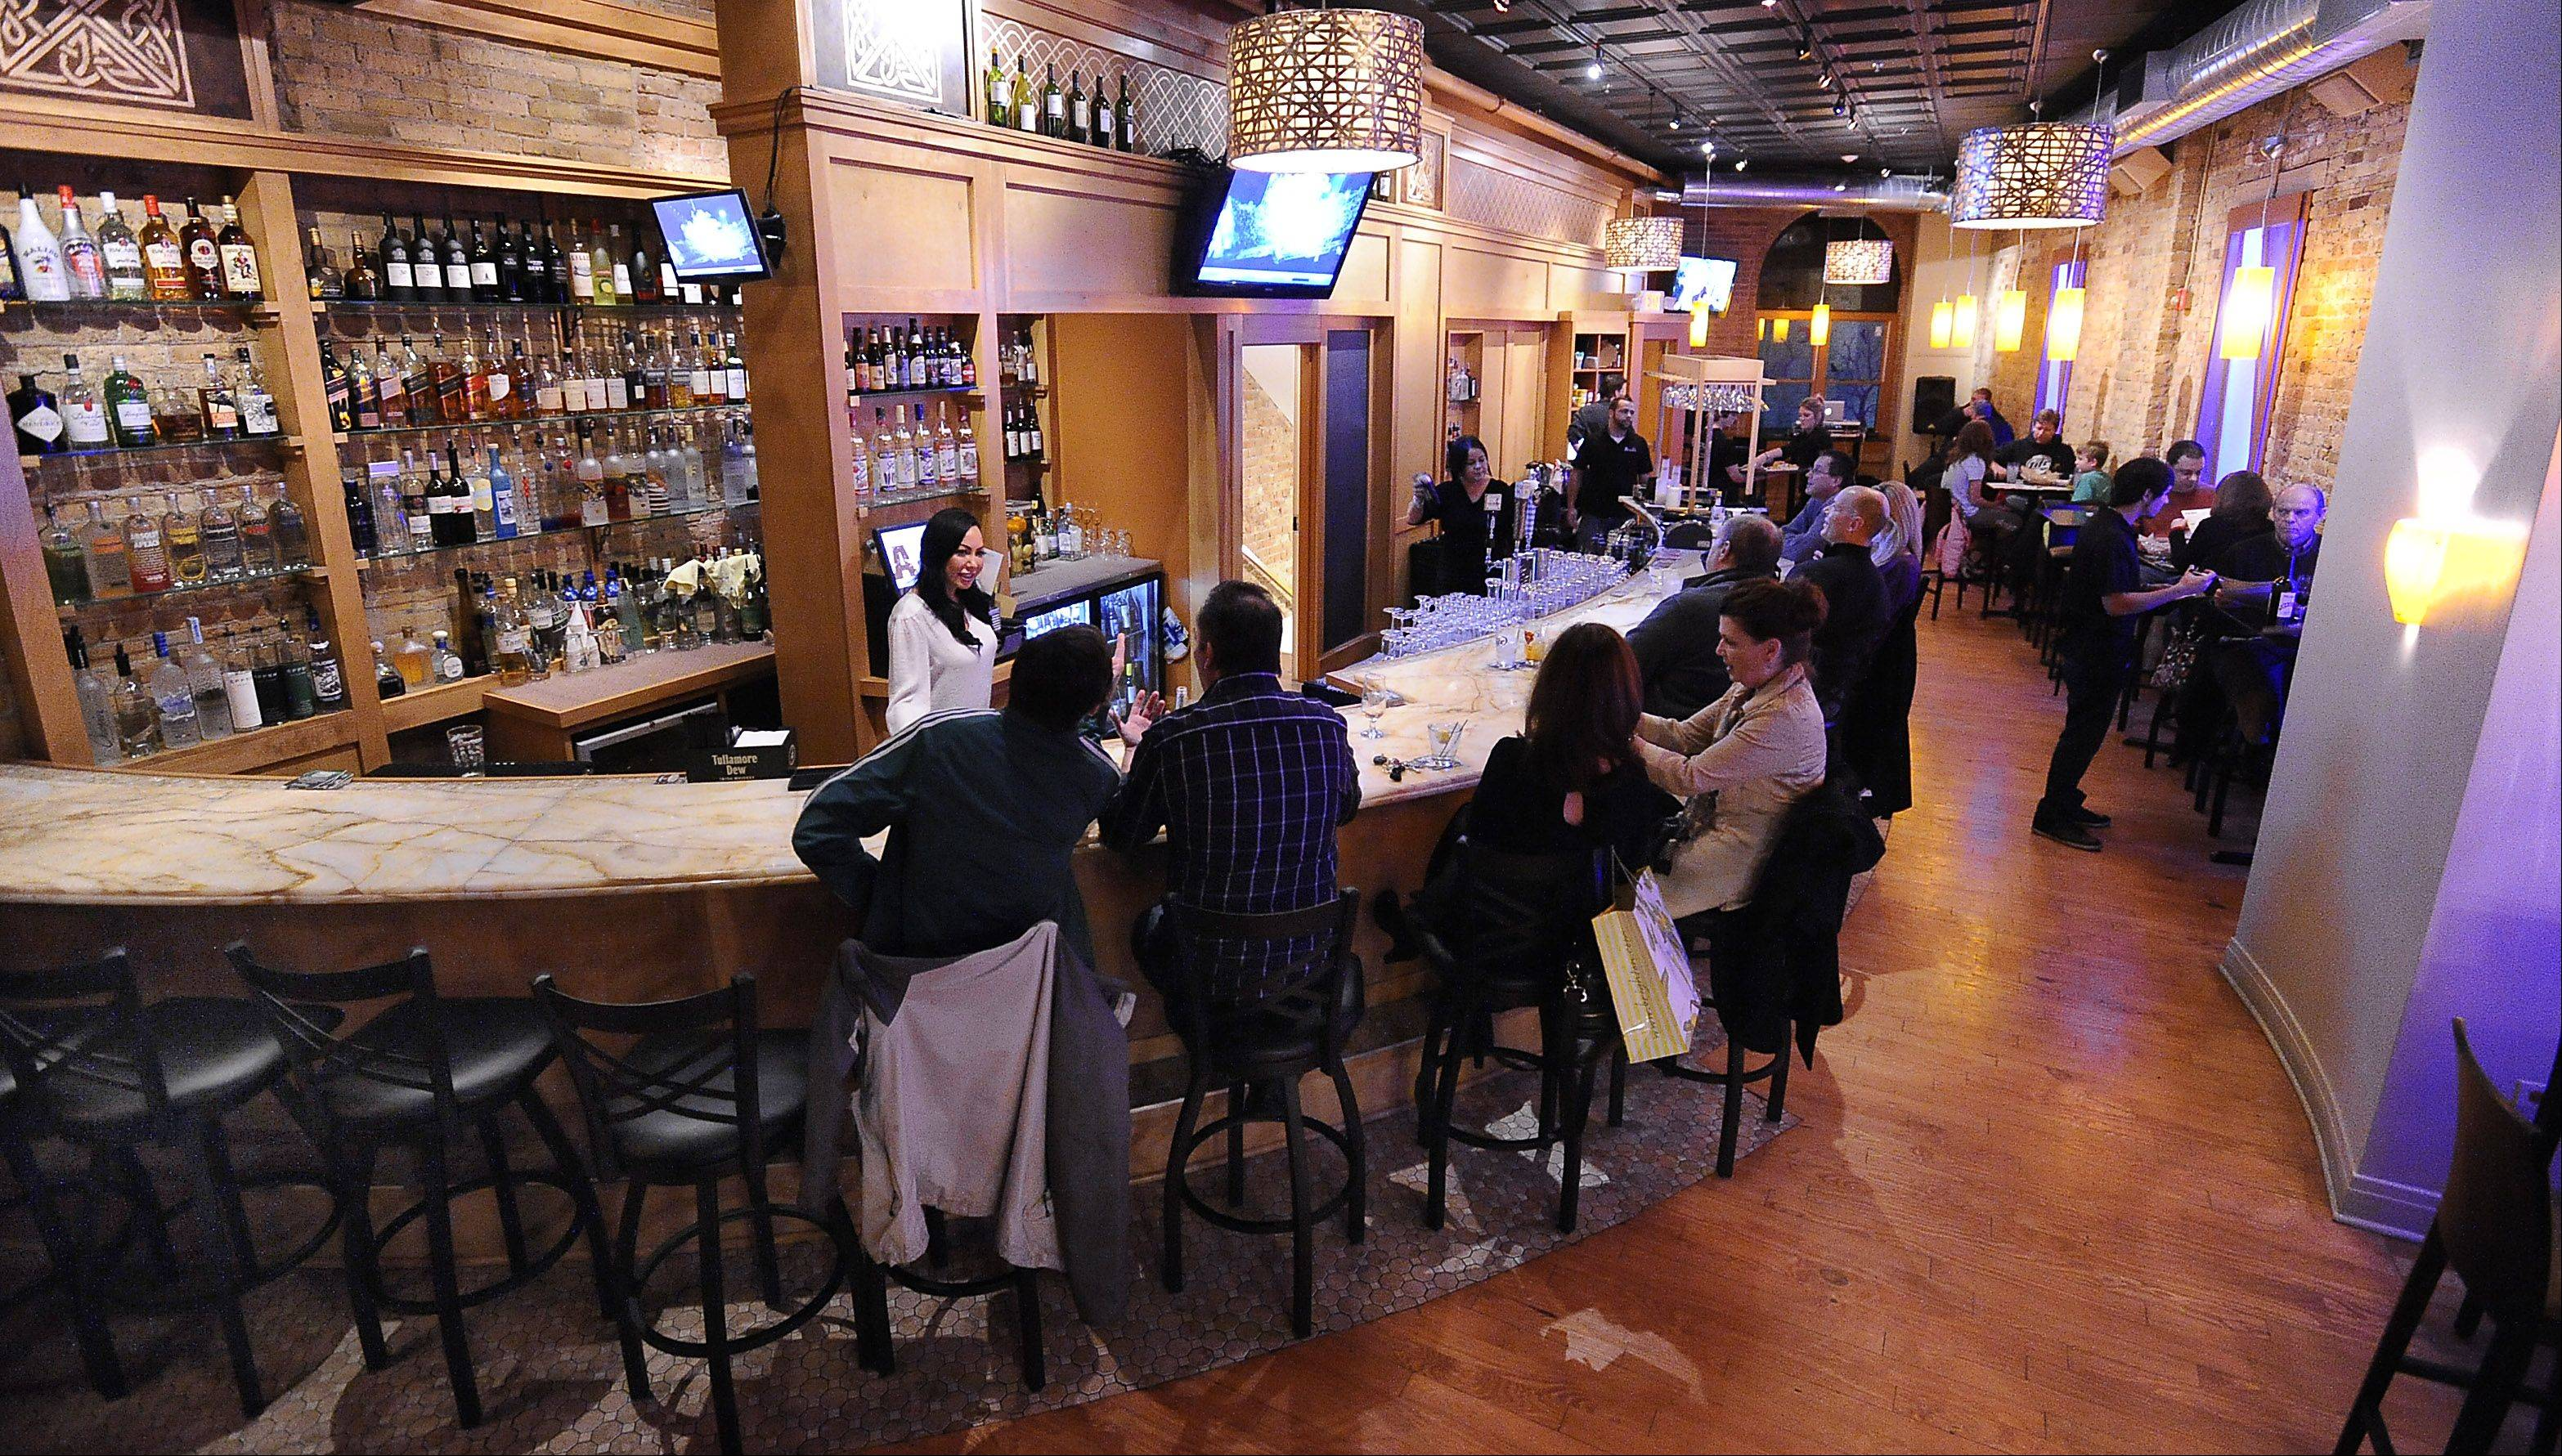 The Annex in Barrington offers craft beer, wine and classic cocktails.